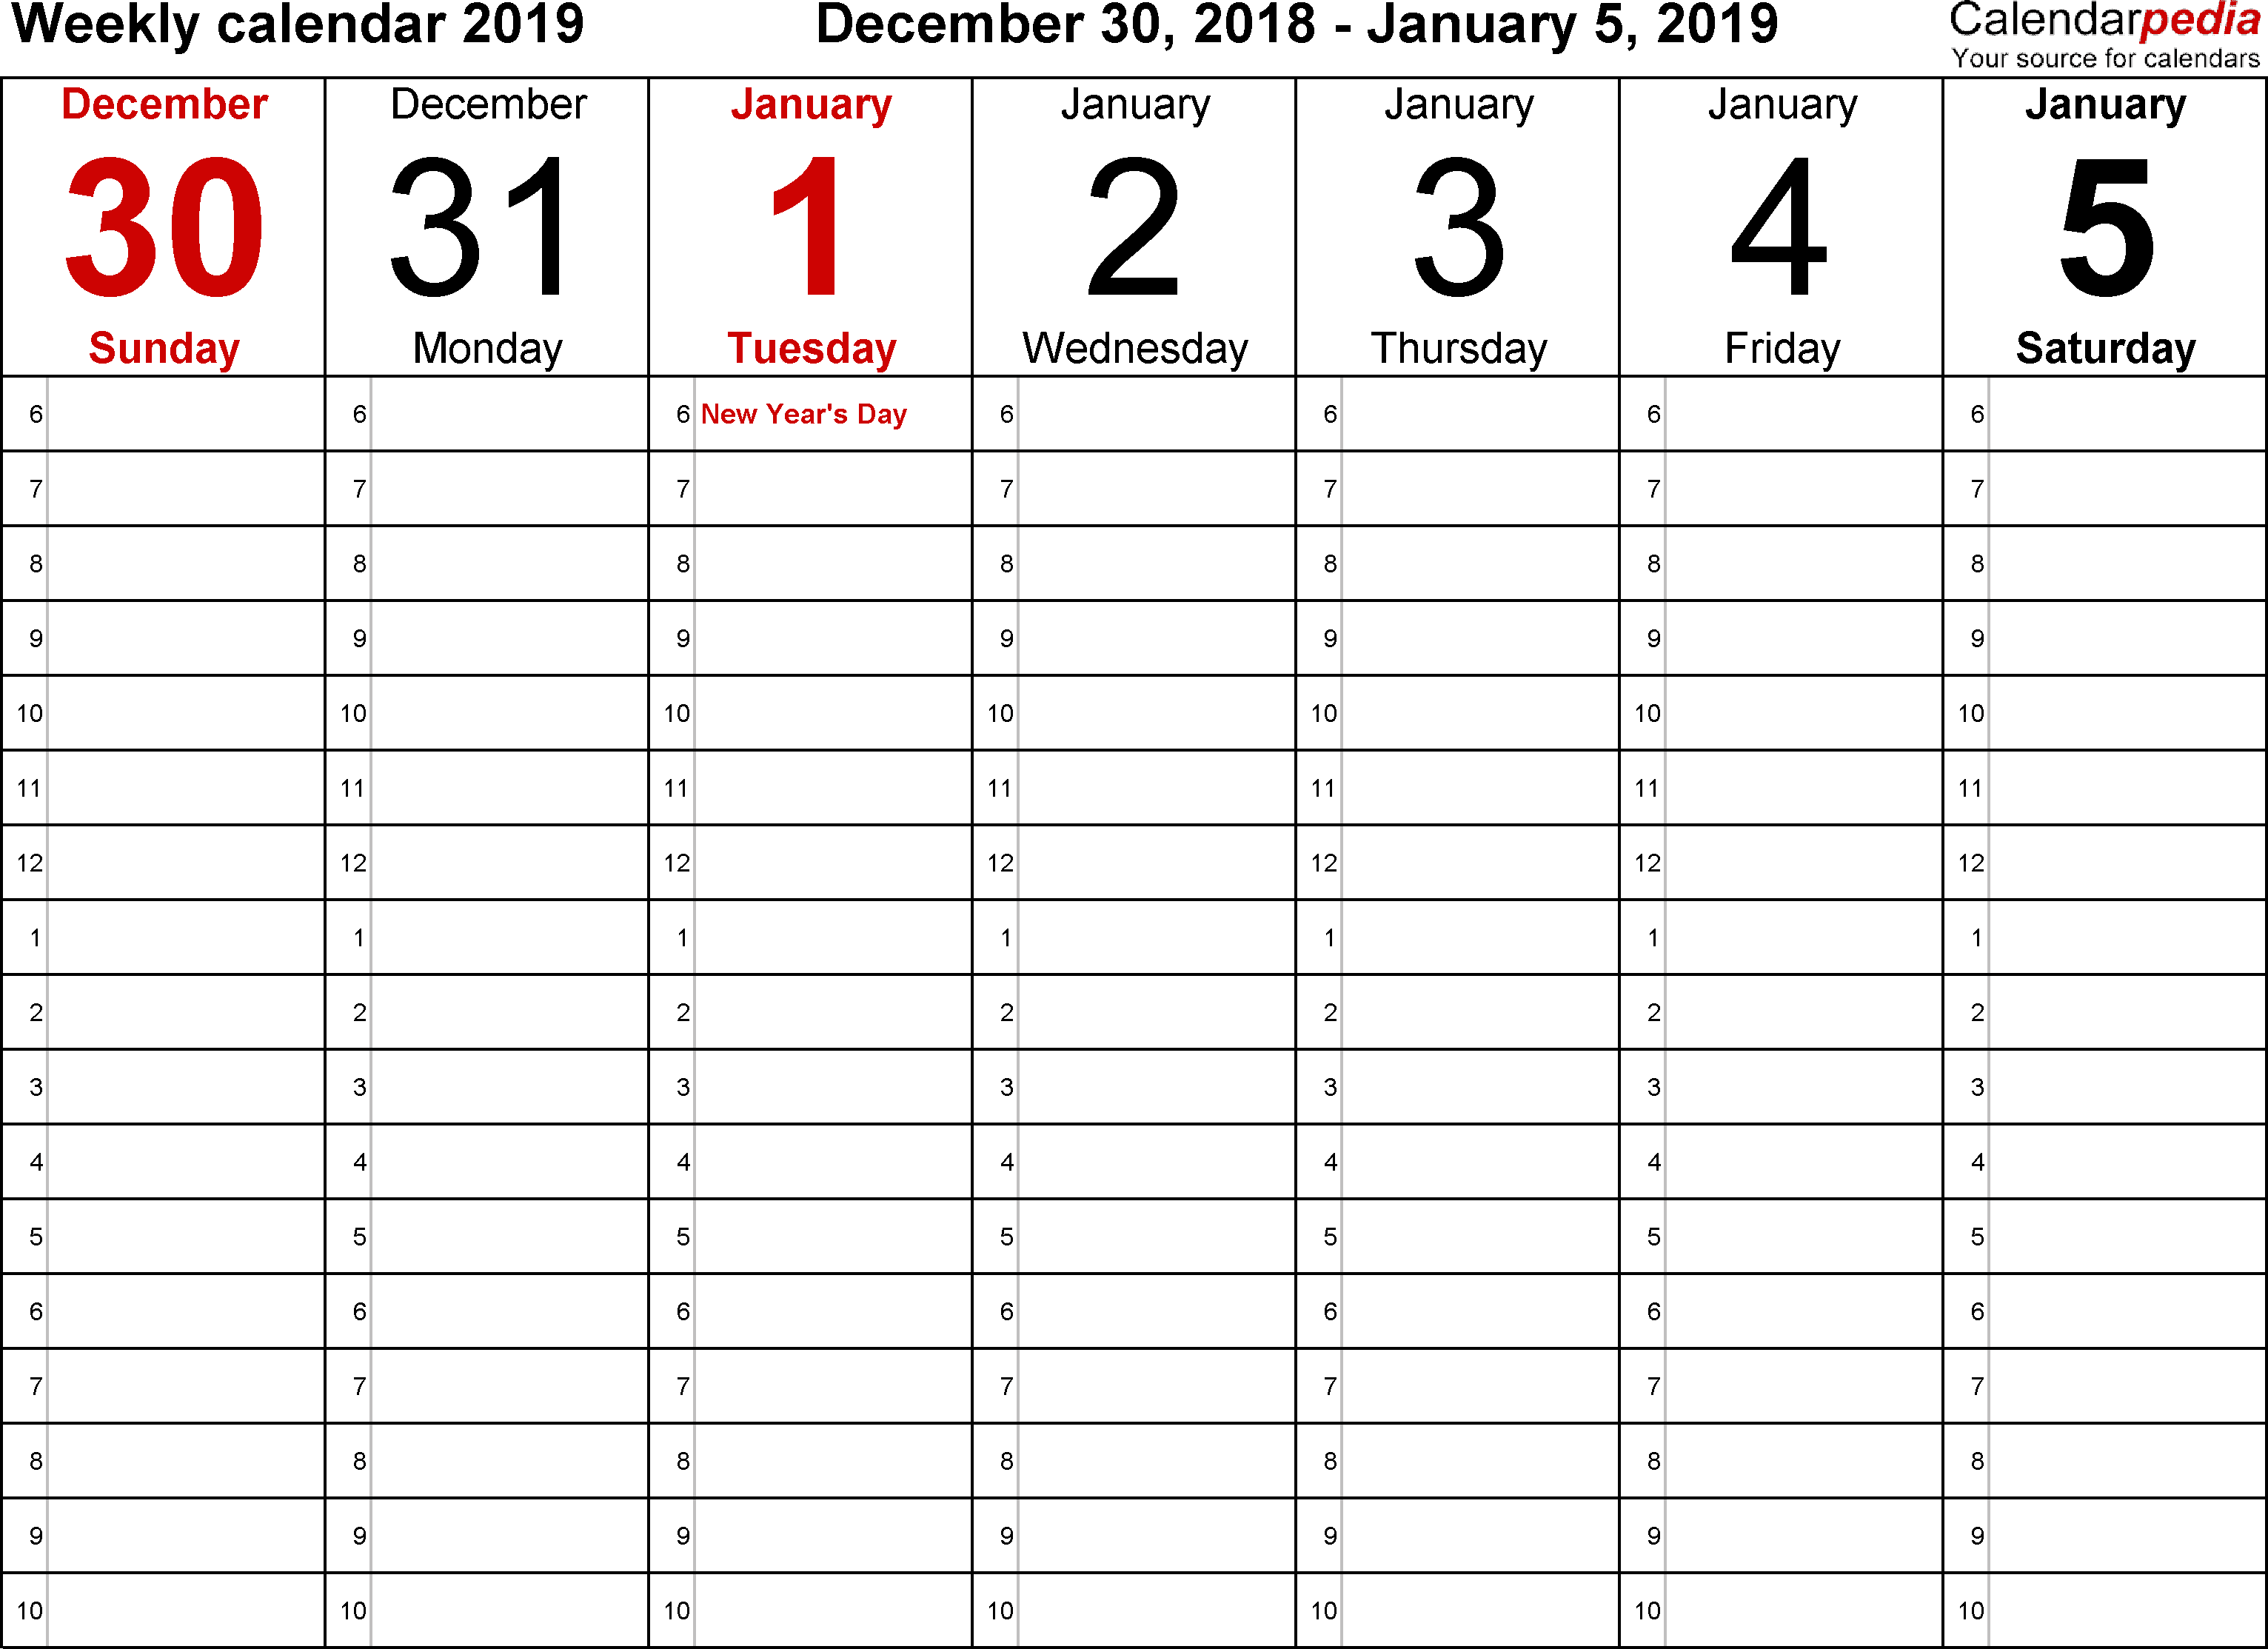 weekly calendar 2019 template for word version 1 landscape 53 pages time